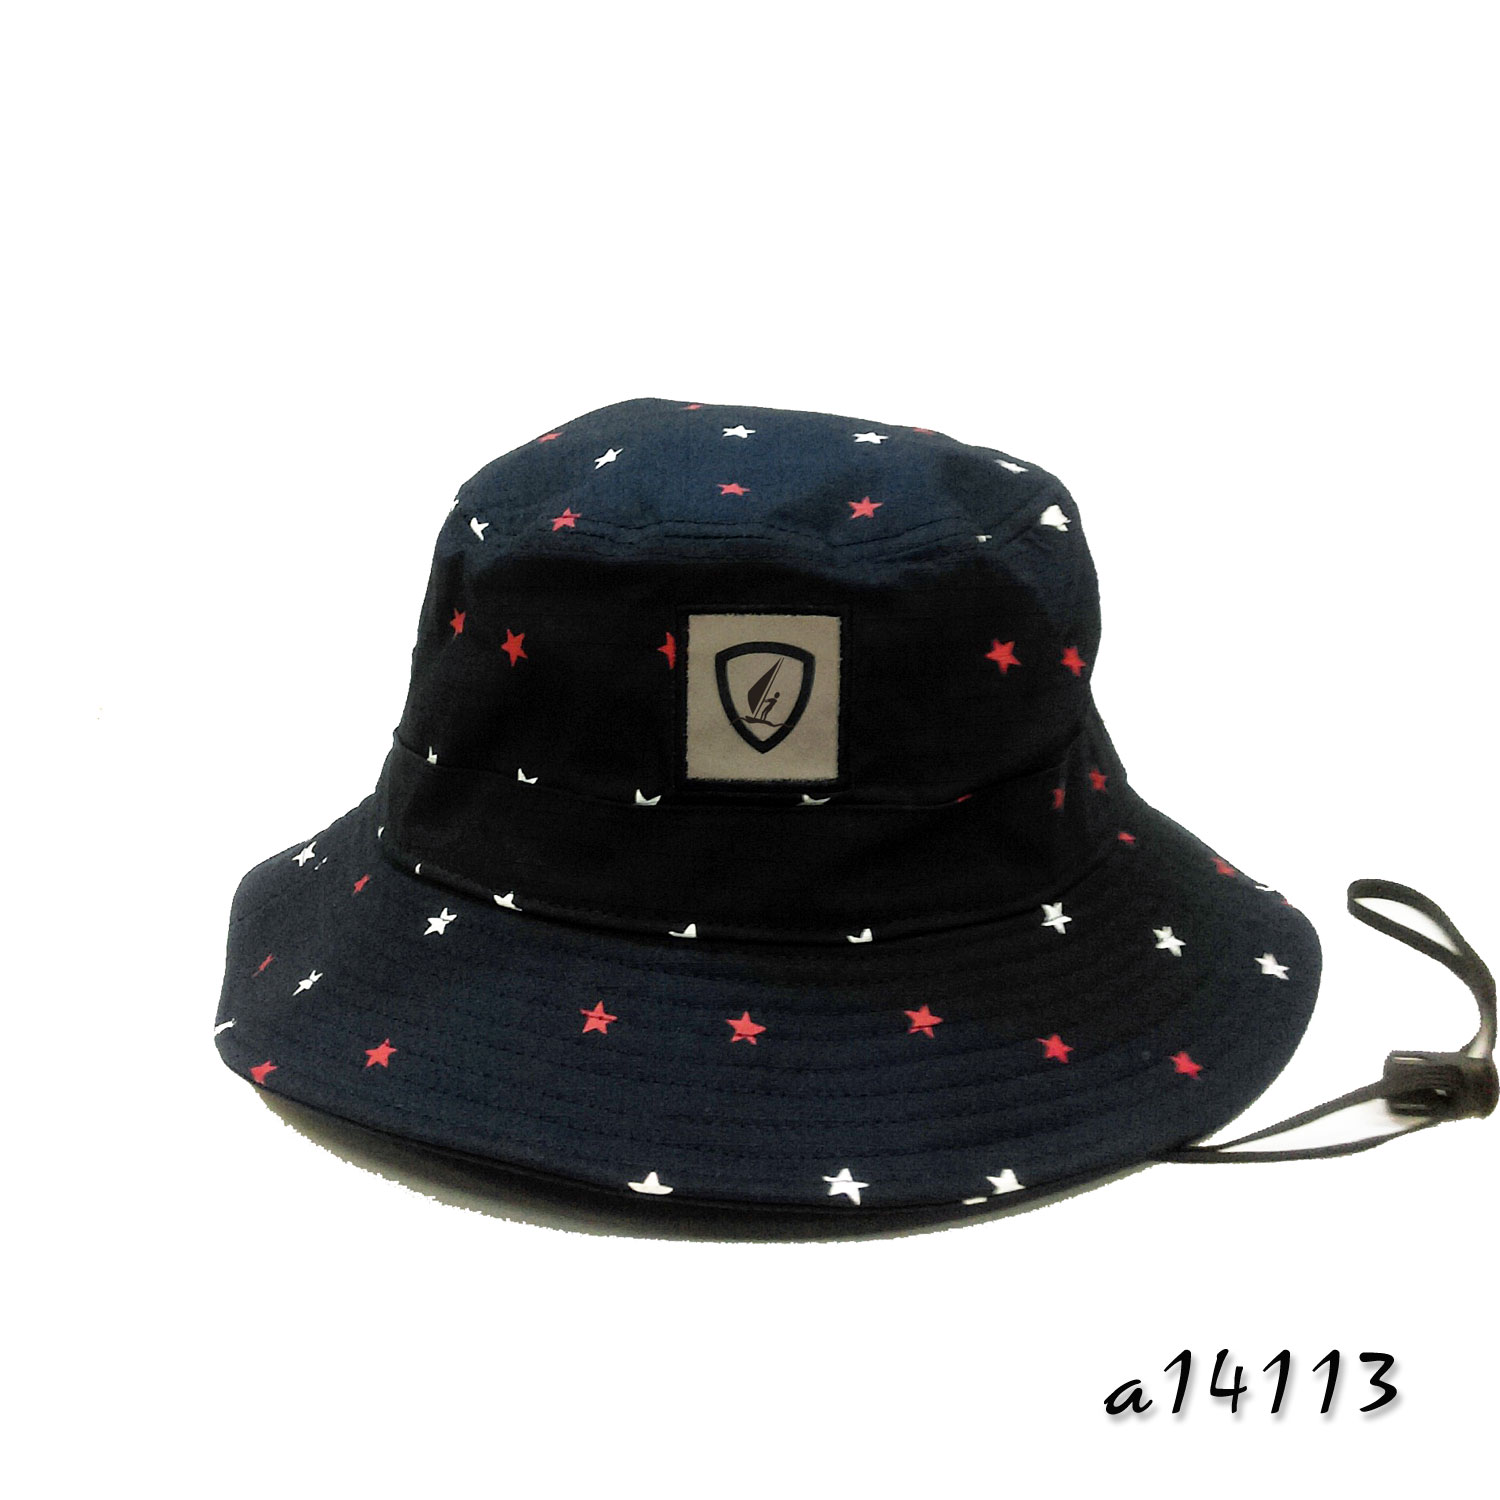 Bucket hat with allover starry print patterns a14113